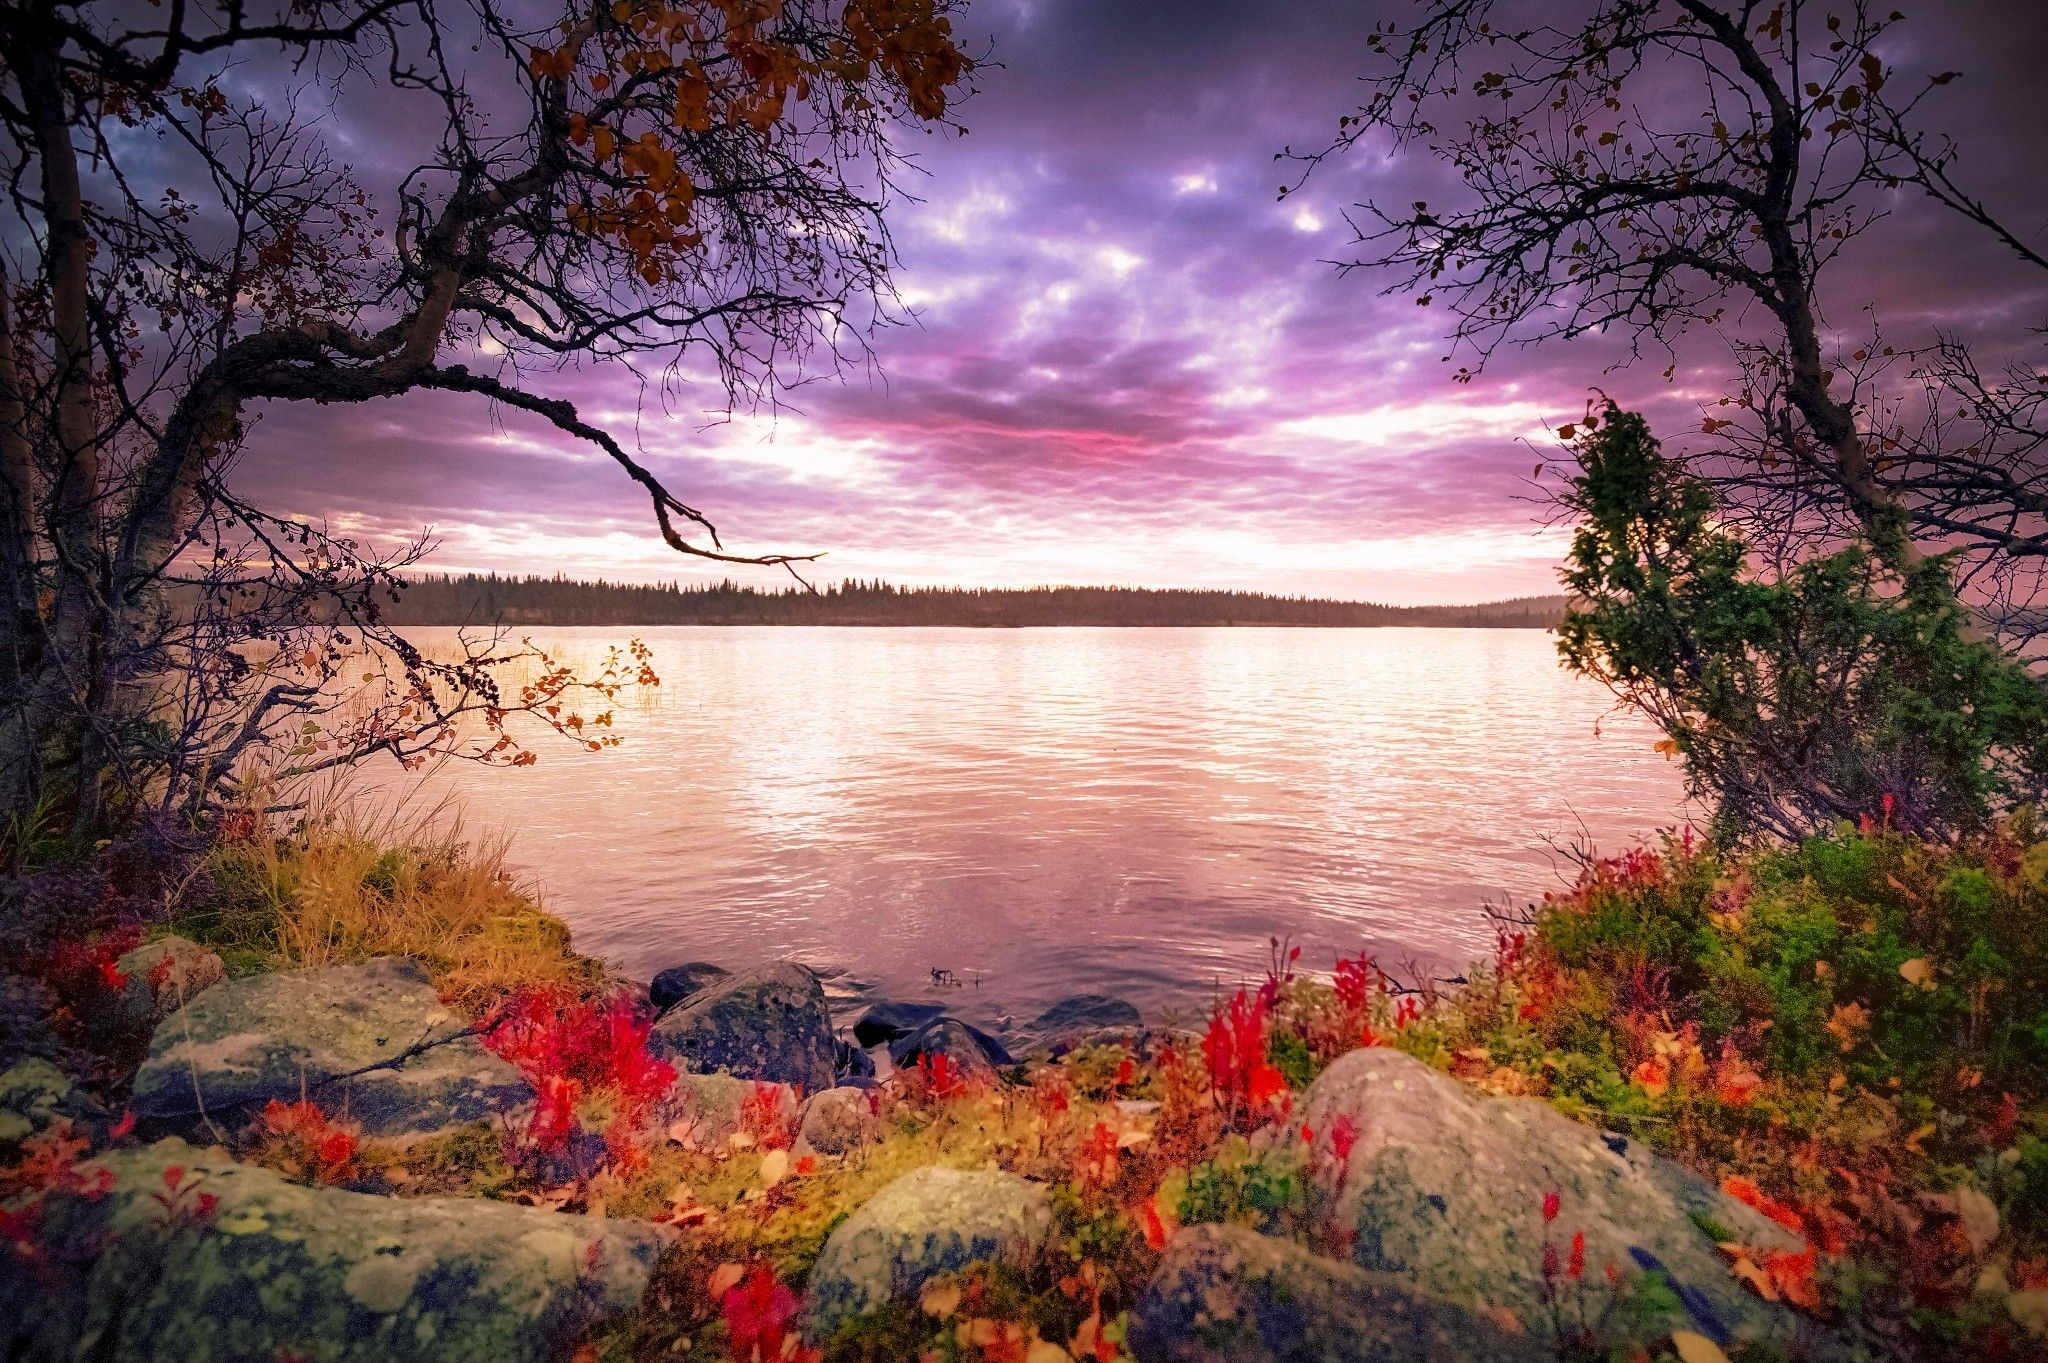 Lakes Autumn Morning Plants Fall Tranquility Sky Beautiful